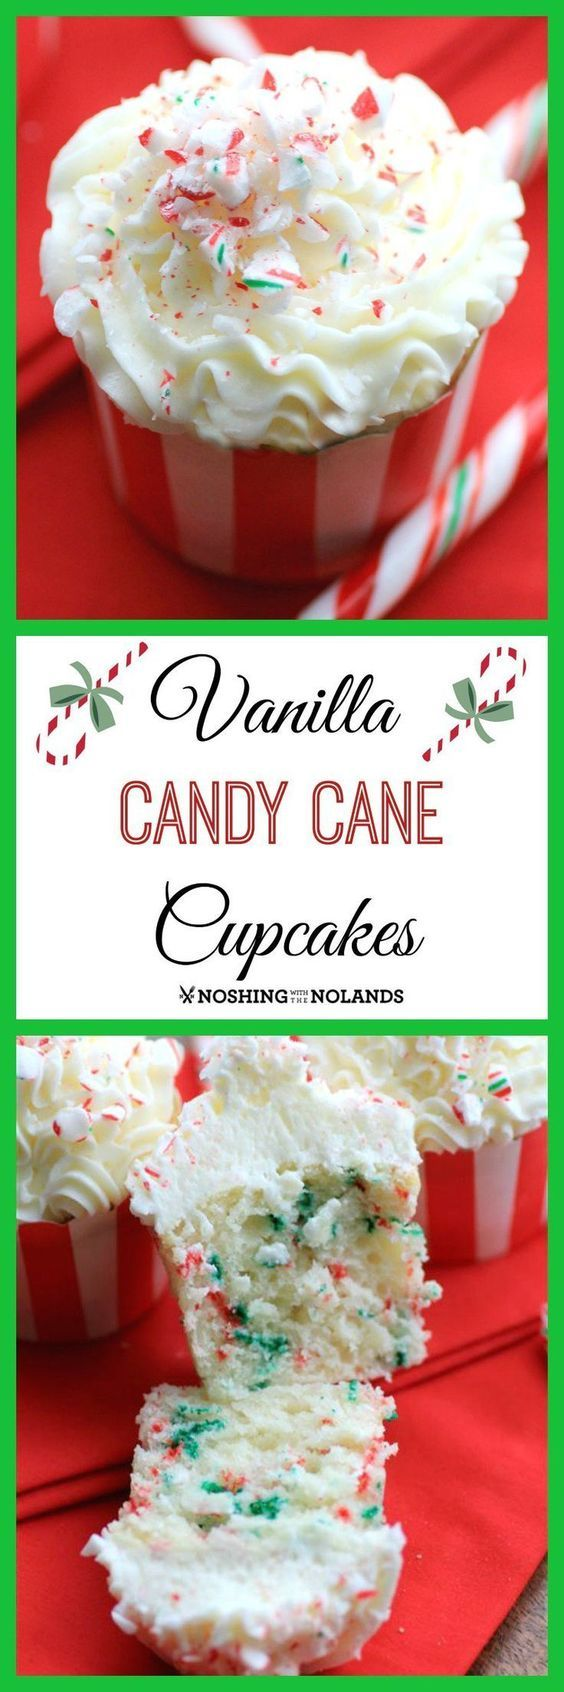 These Vanilla Candy Cane Cupcakes will get everyone into the spirit of the holiday with their festive buttercream frosting of peppermint and candy cane!